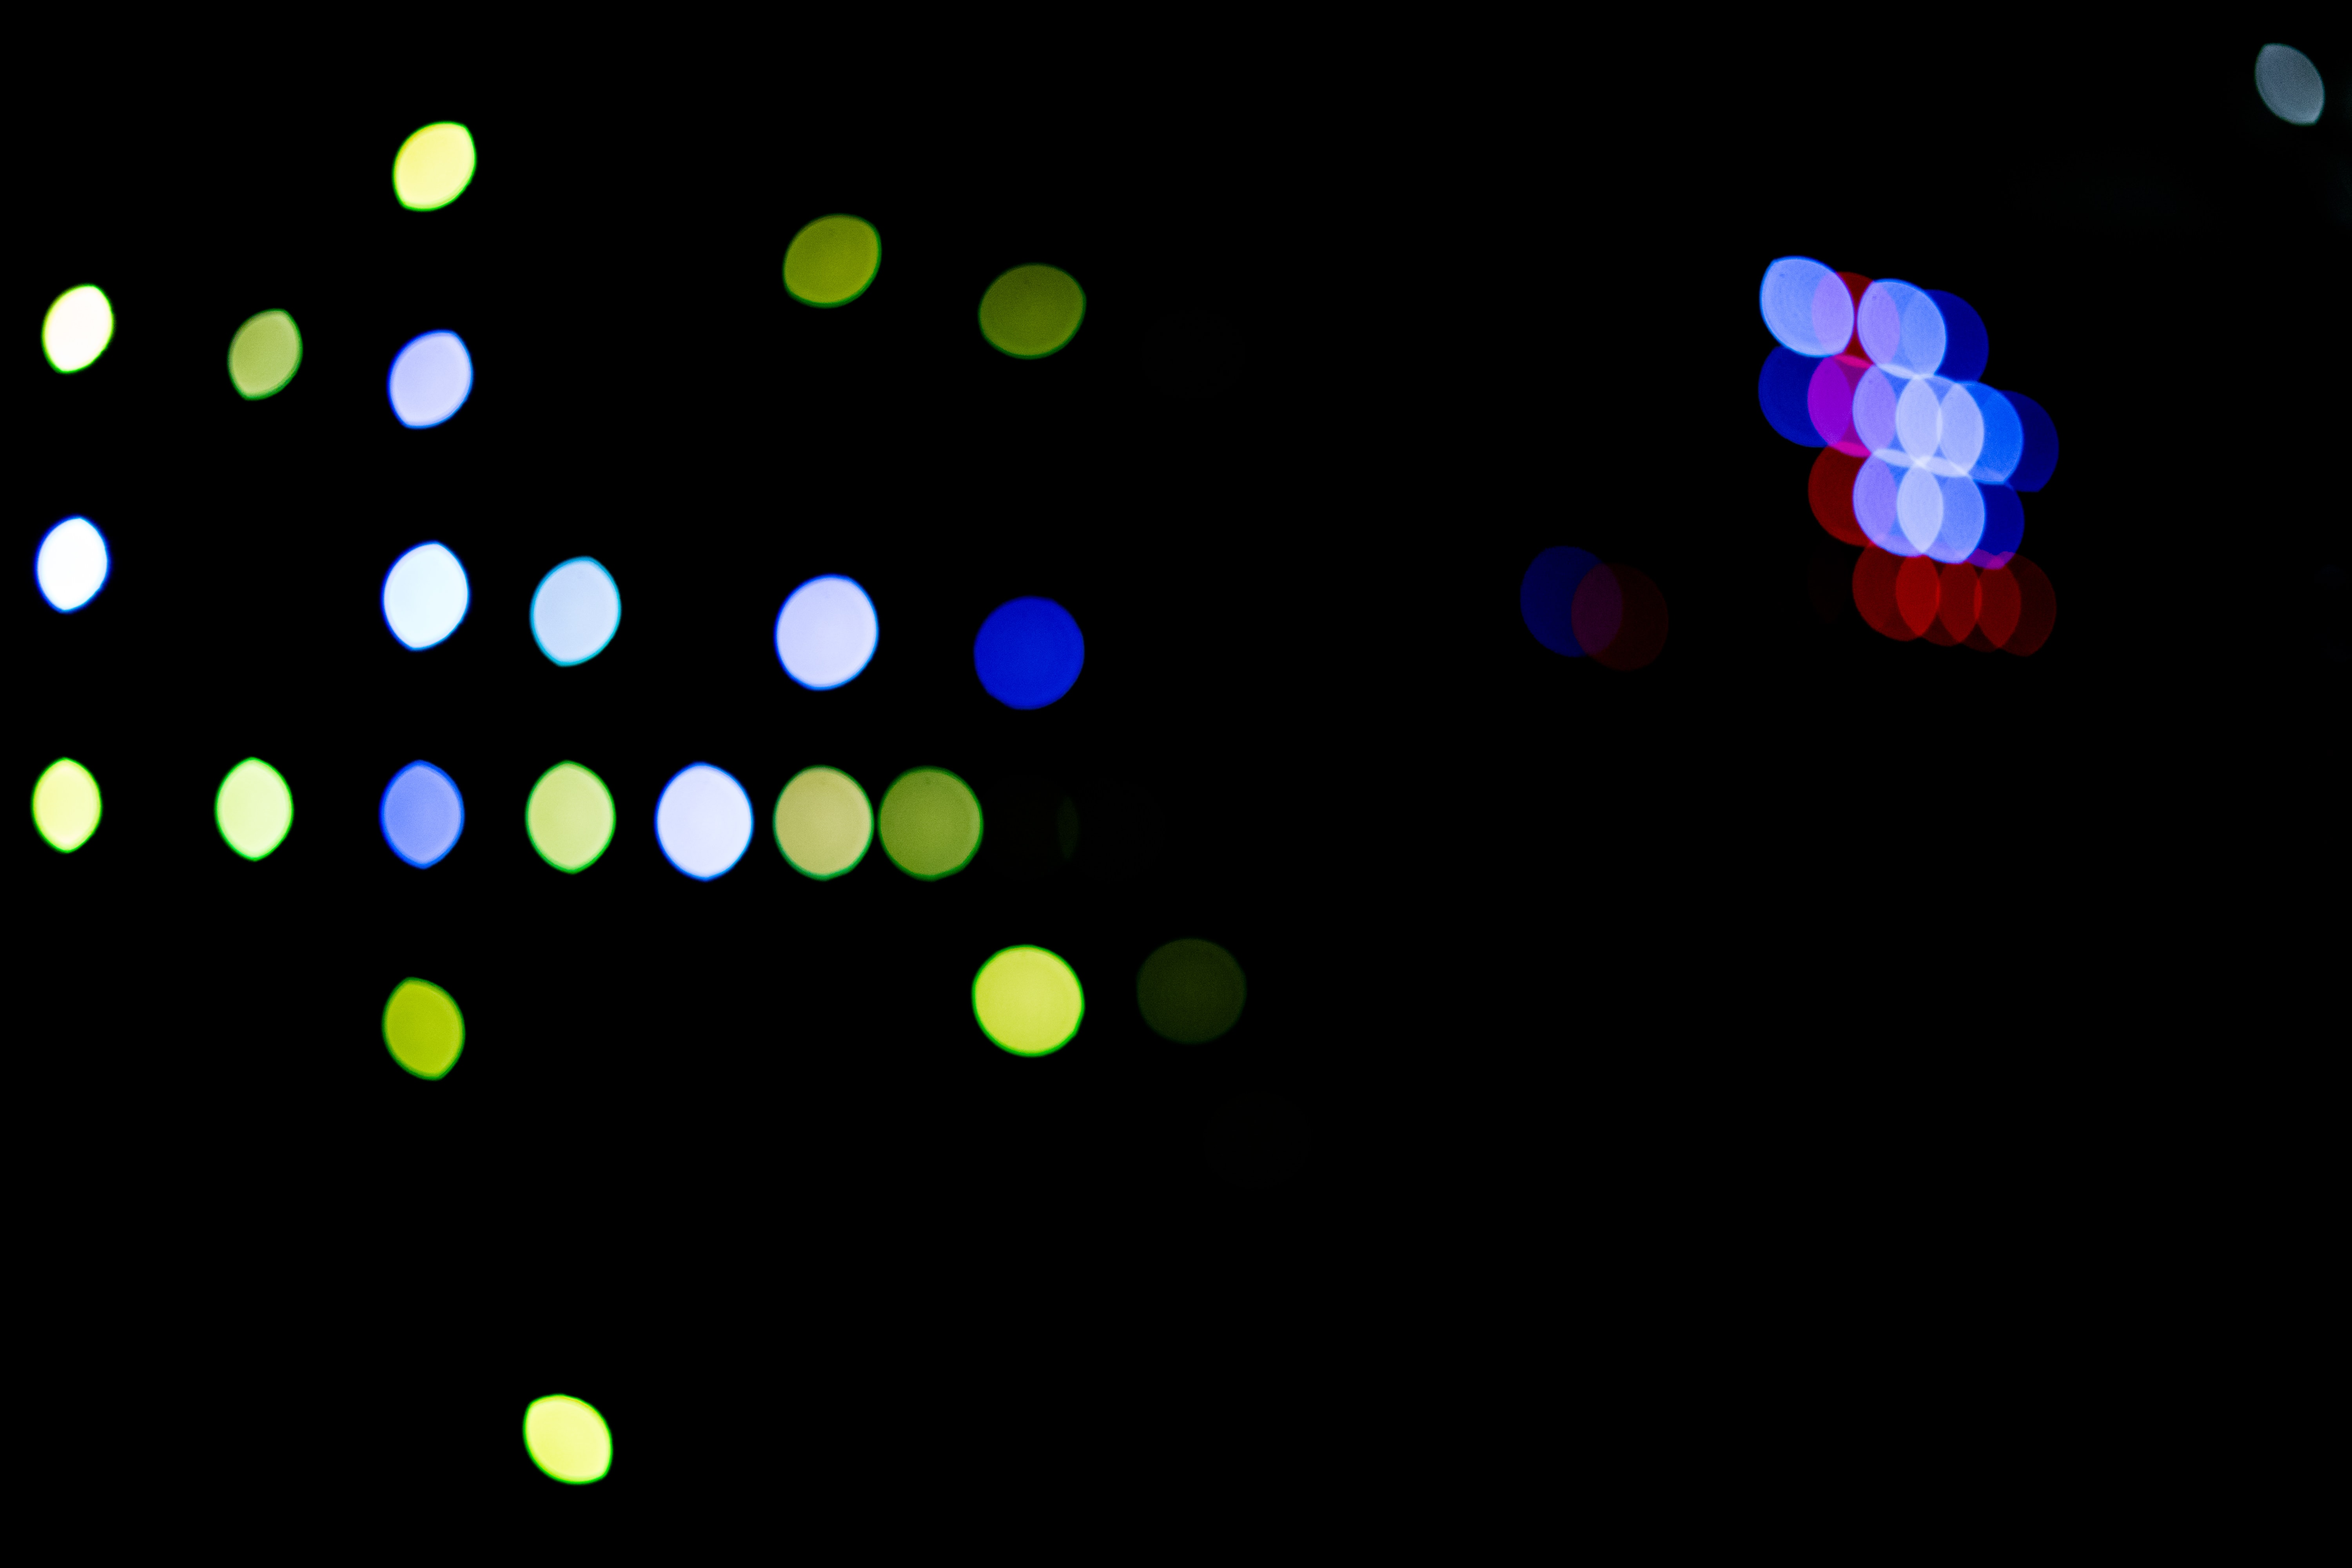 bokeh photography of assorted lights